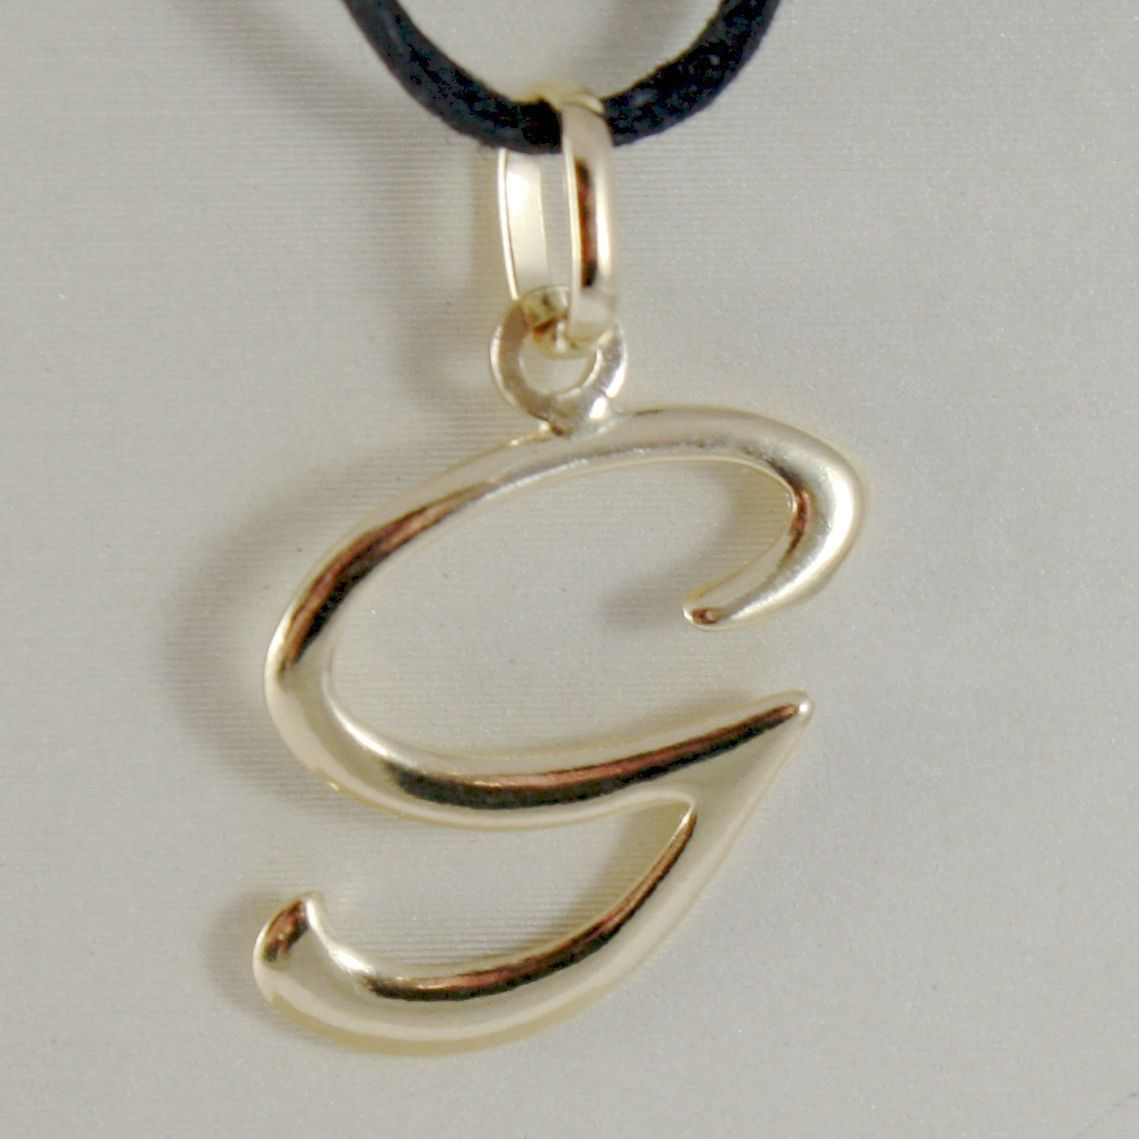 PENDANT YELLOW GOLD 18K WITH INITIAL G LETTER G GLOSSY 2,5 CM WITH CORD